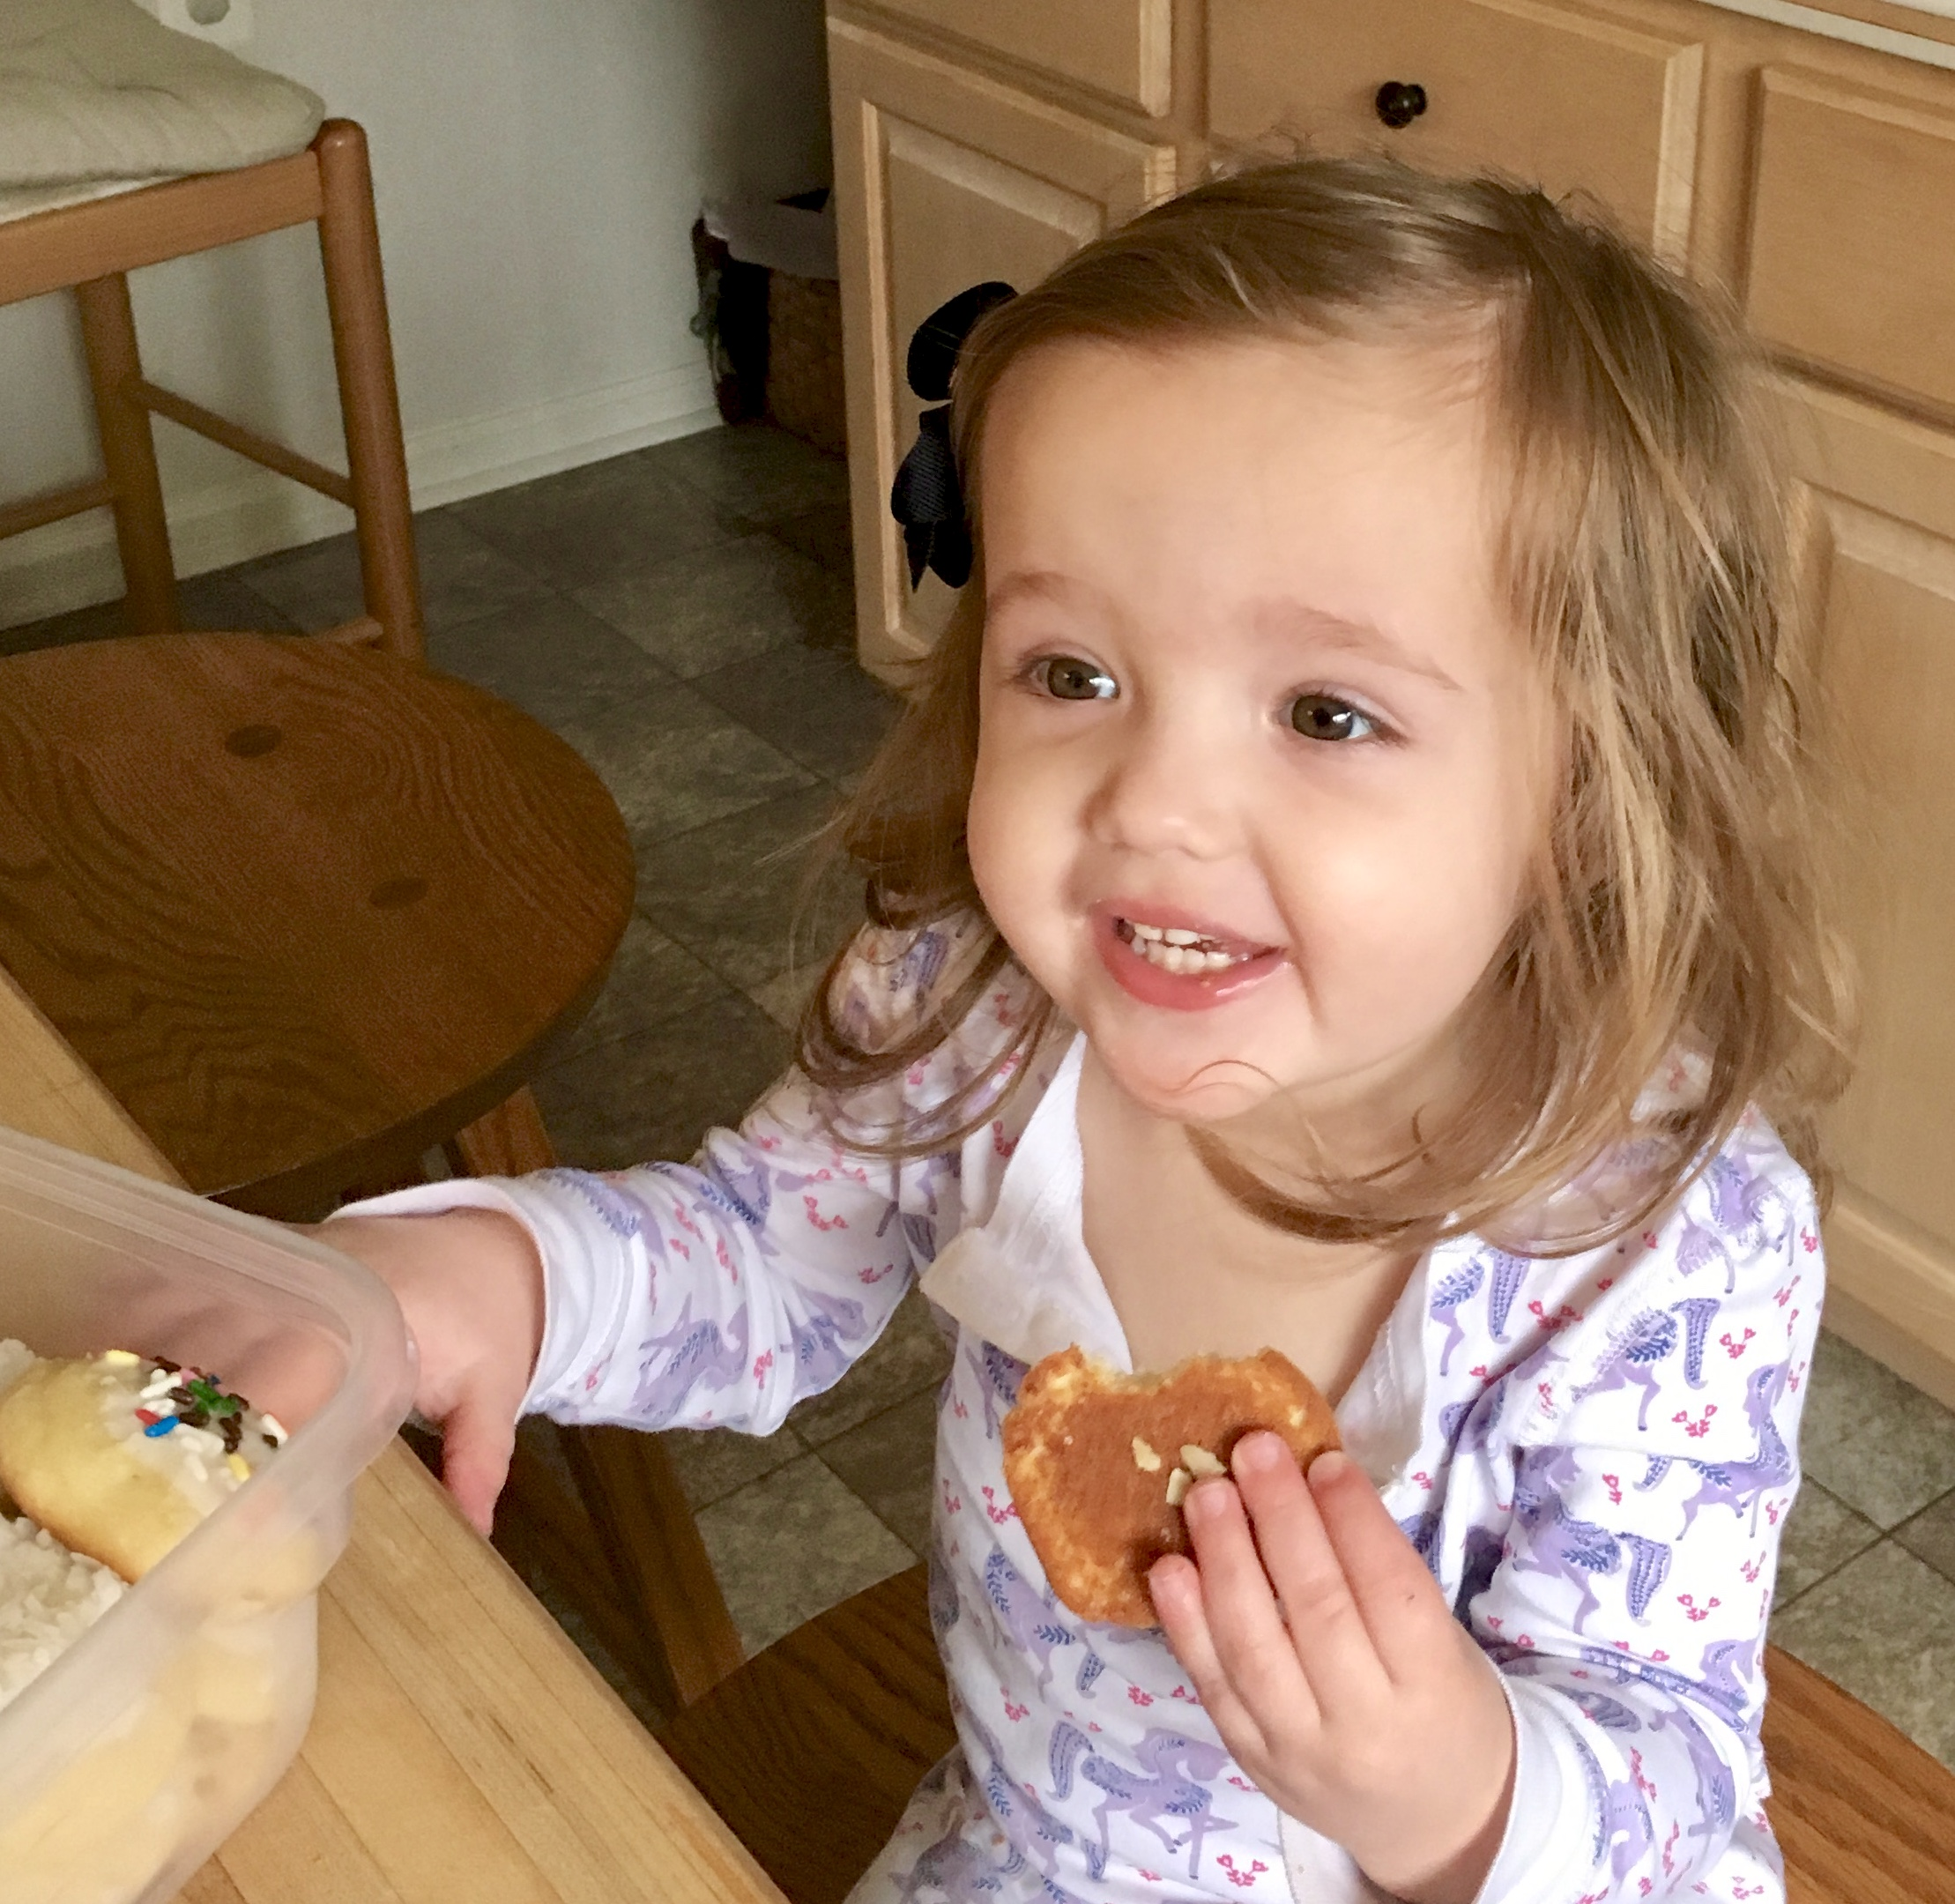 grand daughter eating a cookie